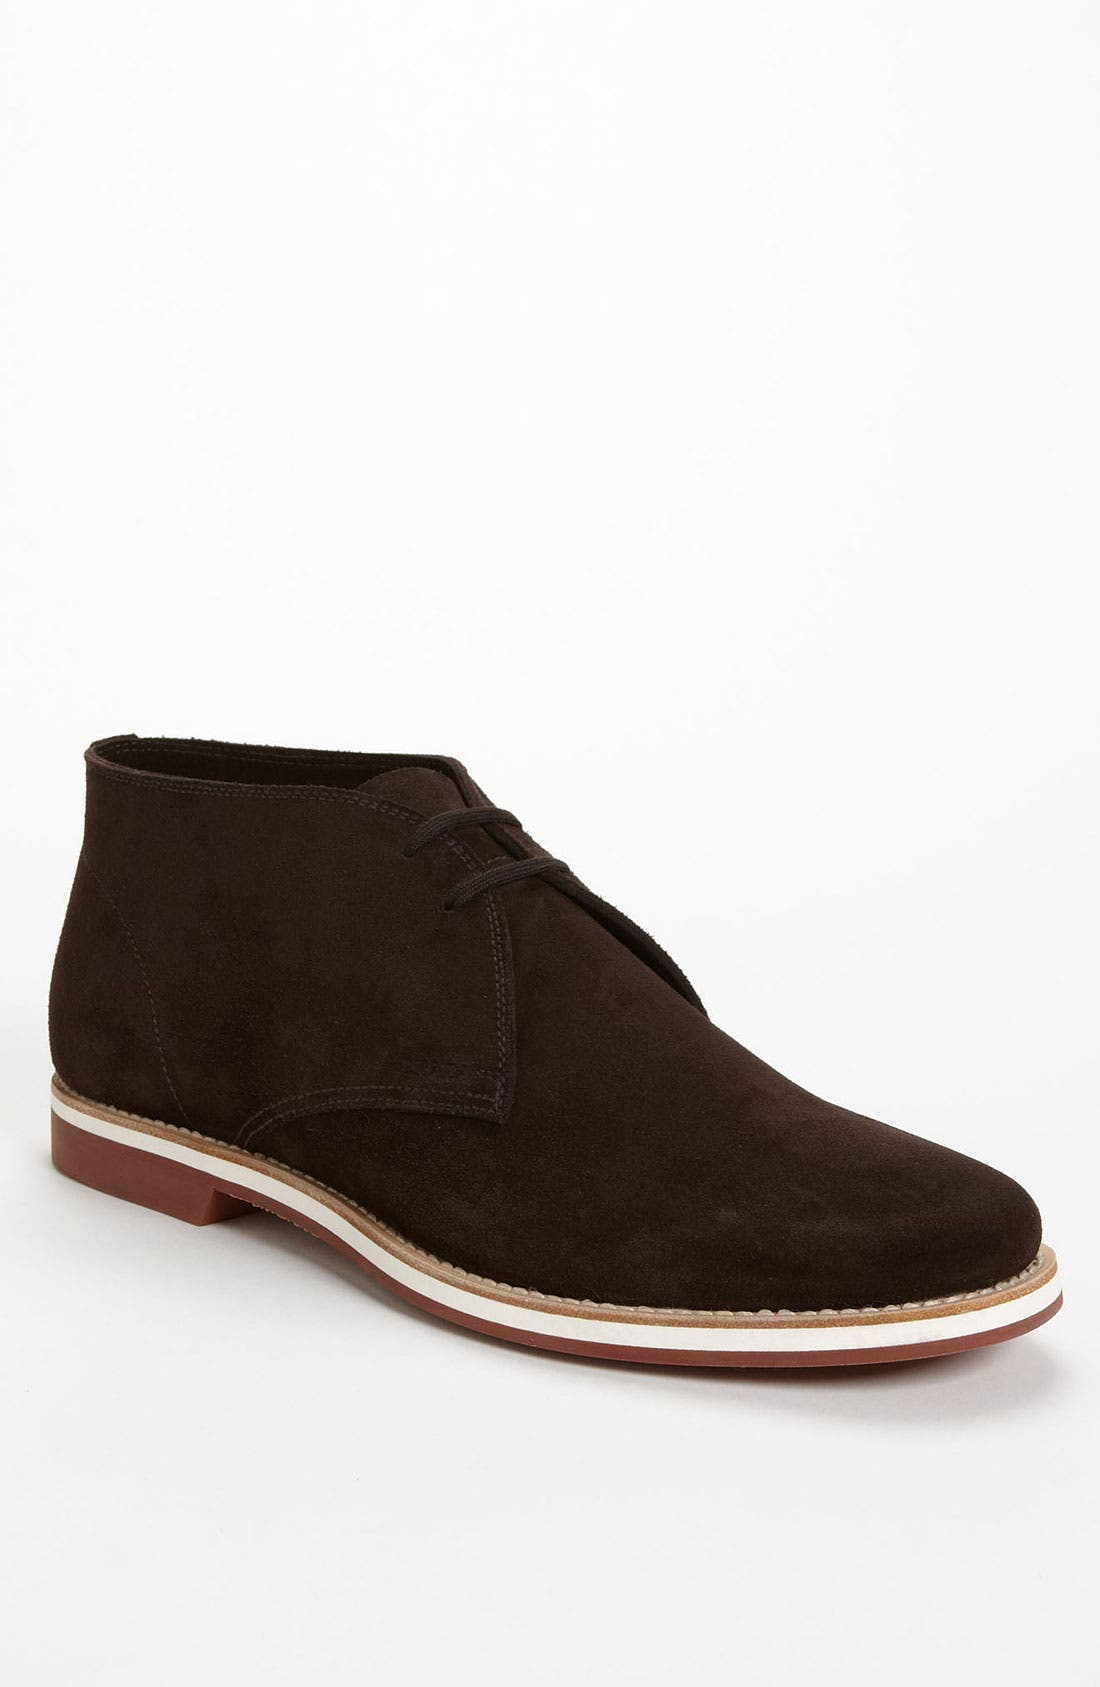 Alternate Image 1 Selected - Prada Suede Chukka Boot (Men)